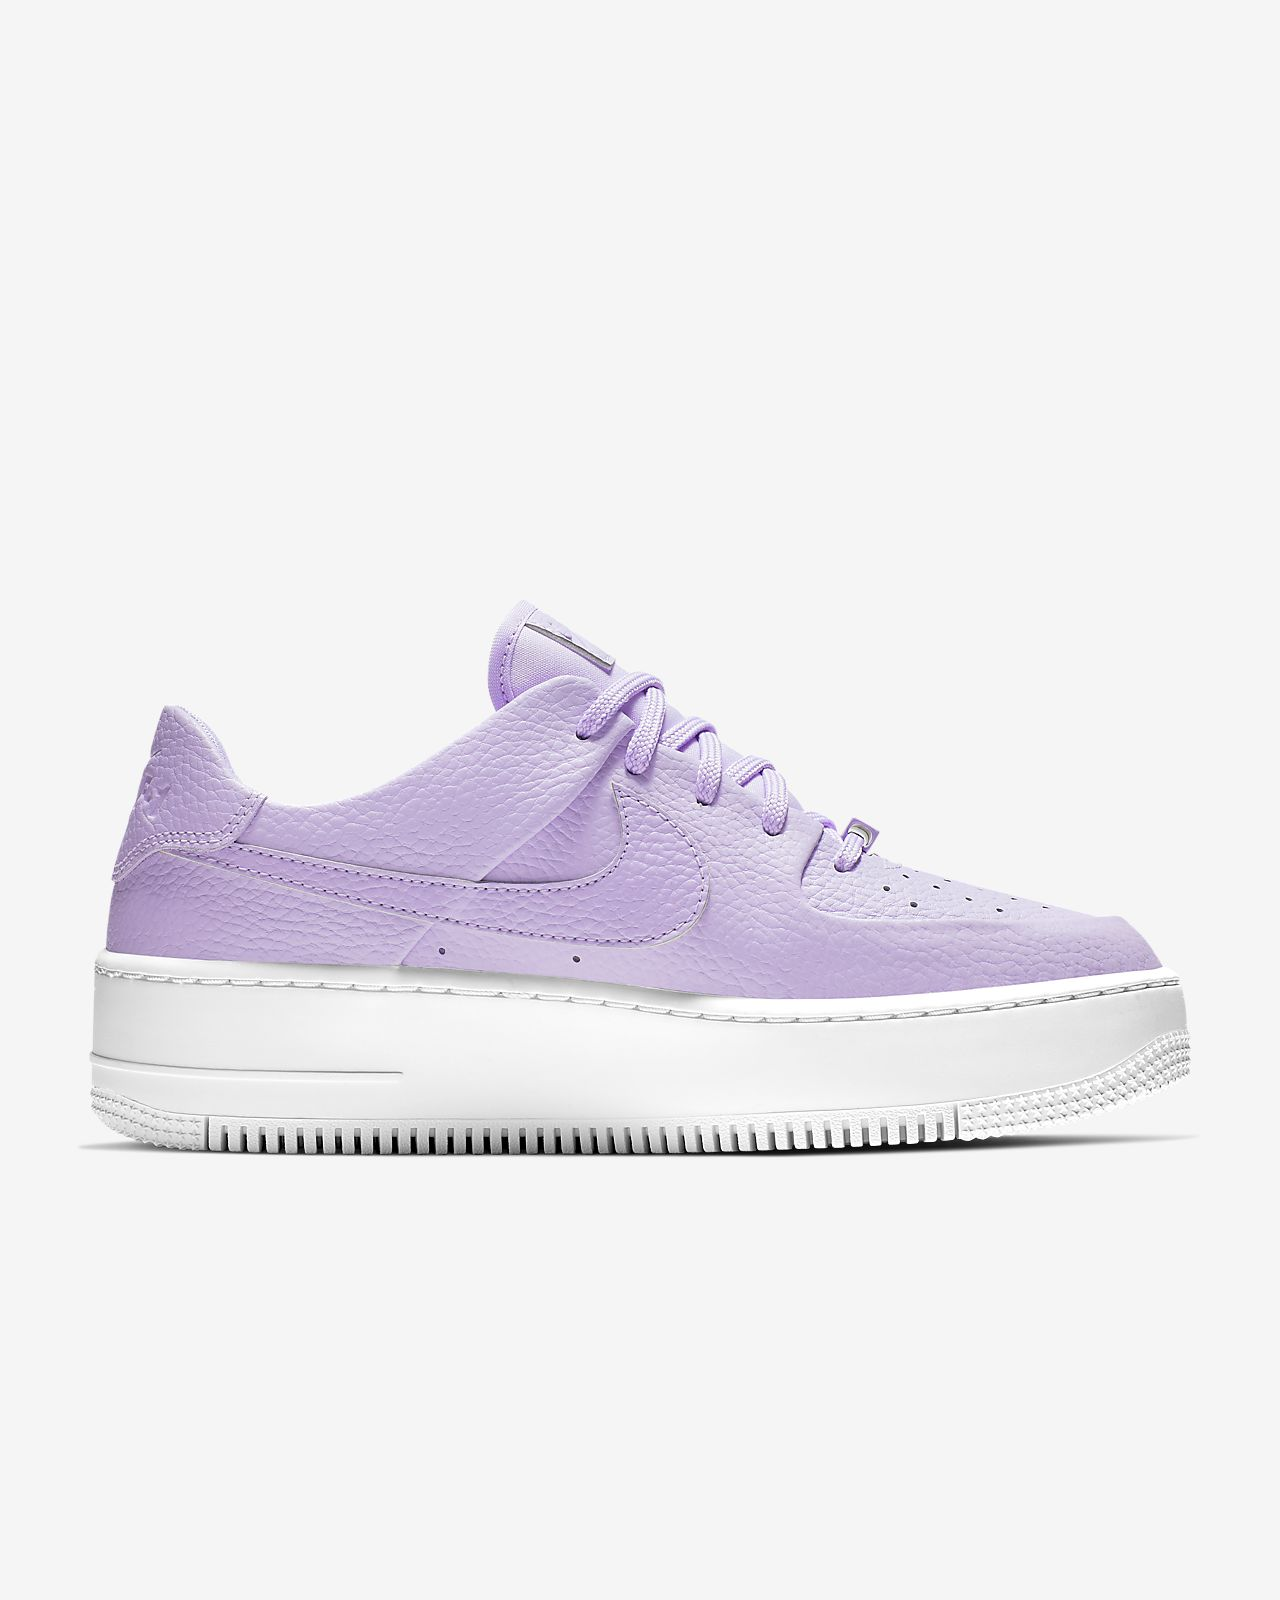 official photos 33dc1 7428c ... Chaussure Nike Air Force 1 Sage Low pour Femme